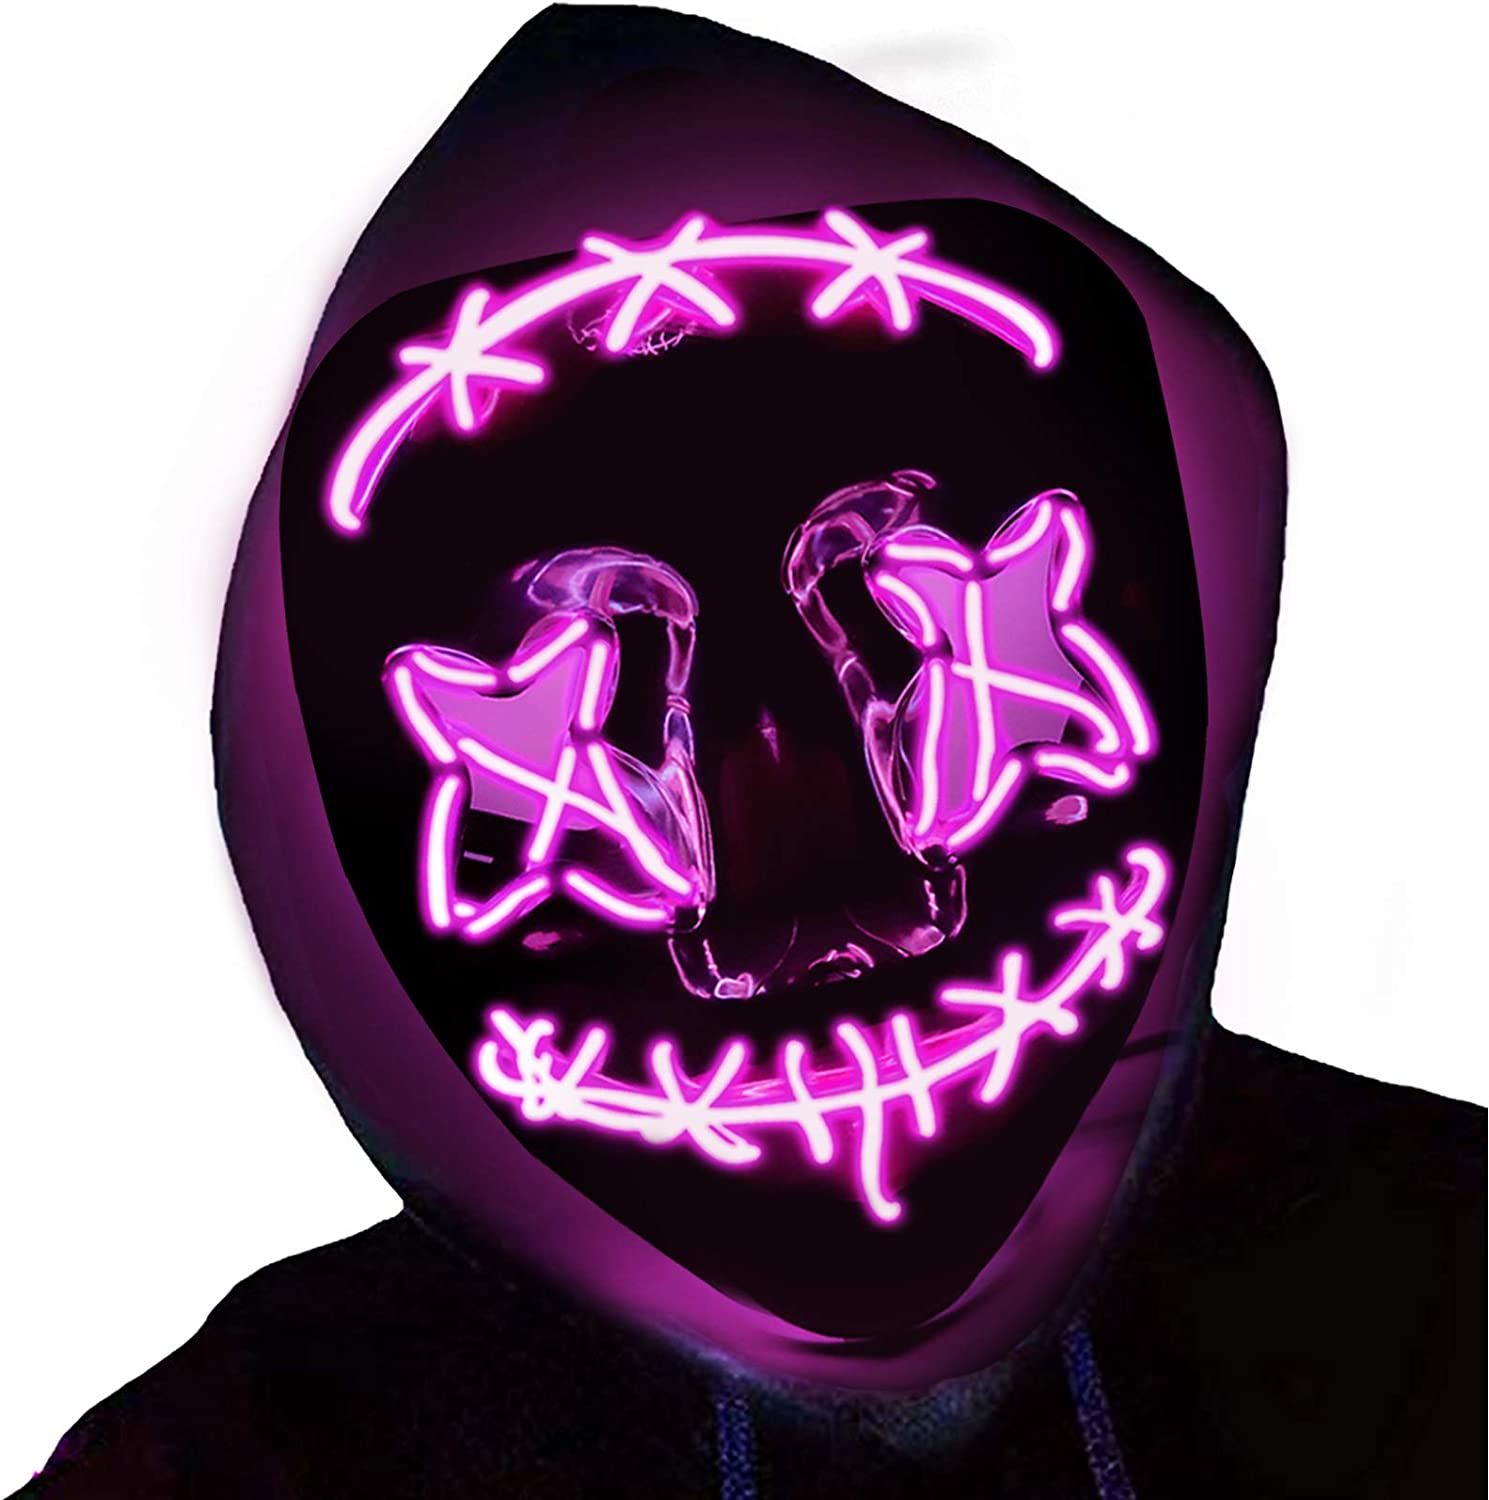 Halloween Light up Mask LED Scary Masks Glow in The Dark Party Masks Halloween Cosplay Supplies 2020 New Upgraded